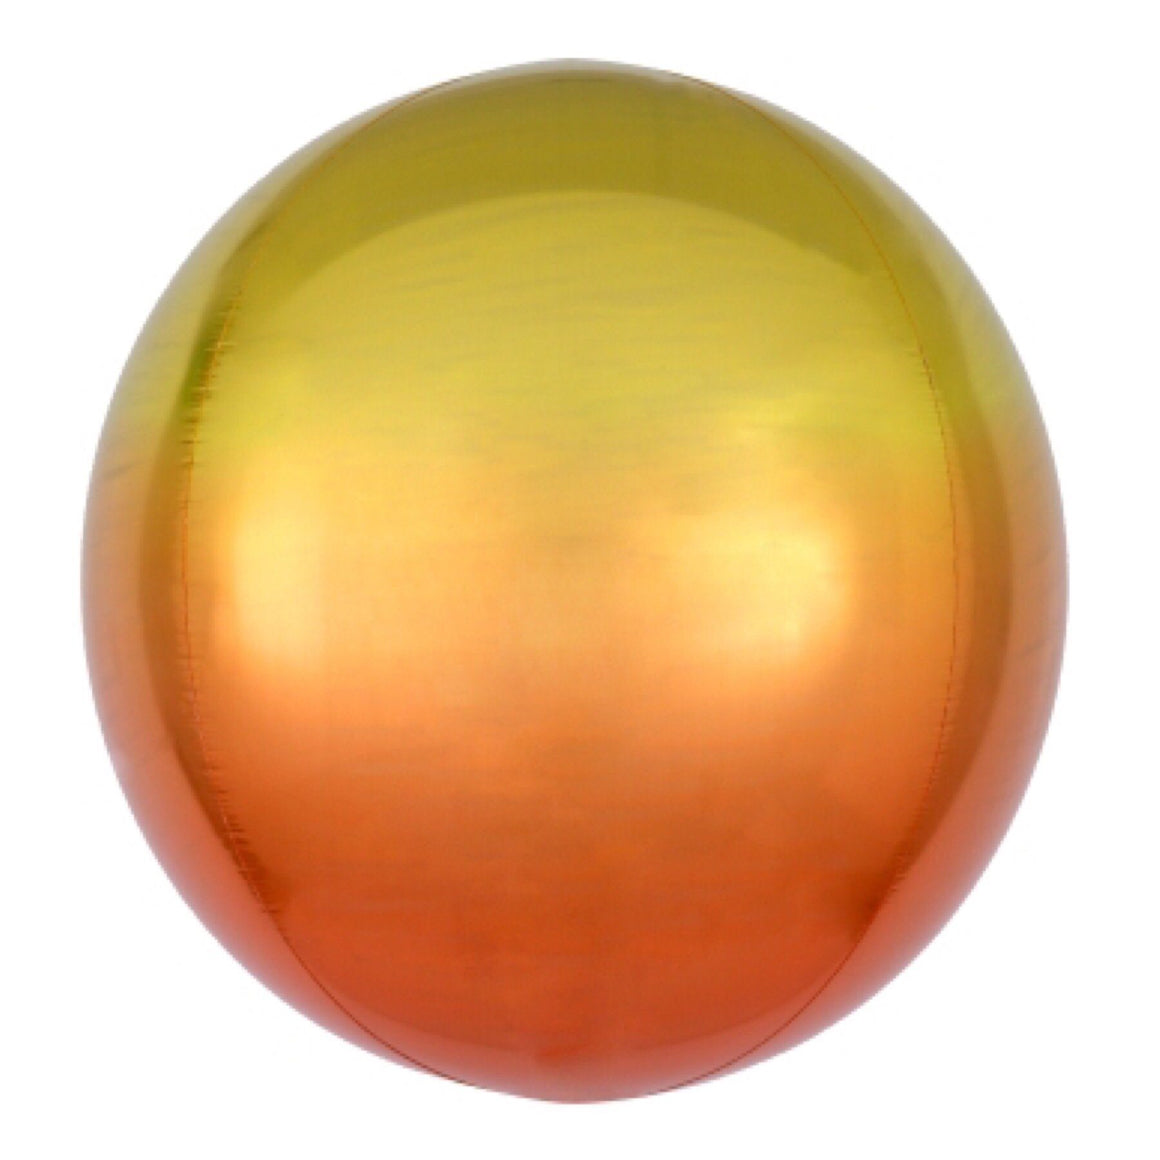 "BALLOON BAR - 16"" ORBZ ROUND OMBRE YELLOW ORANGE, Balloons, Anagram - Bon + Co. Party Studio"